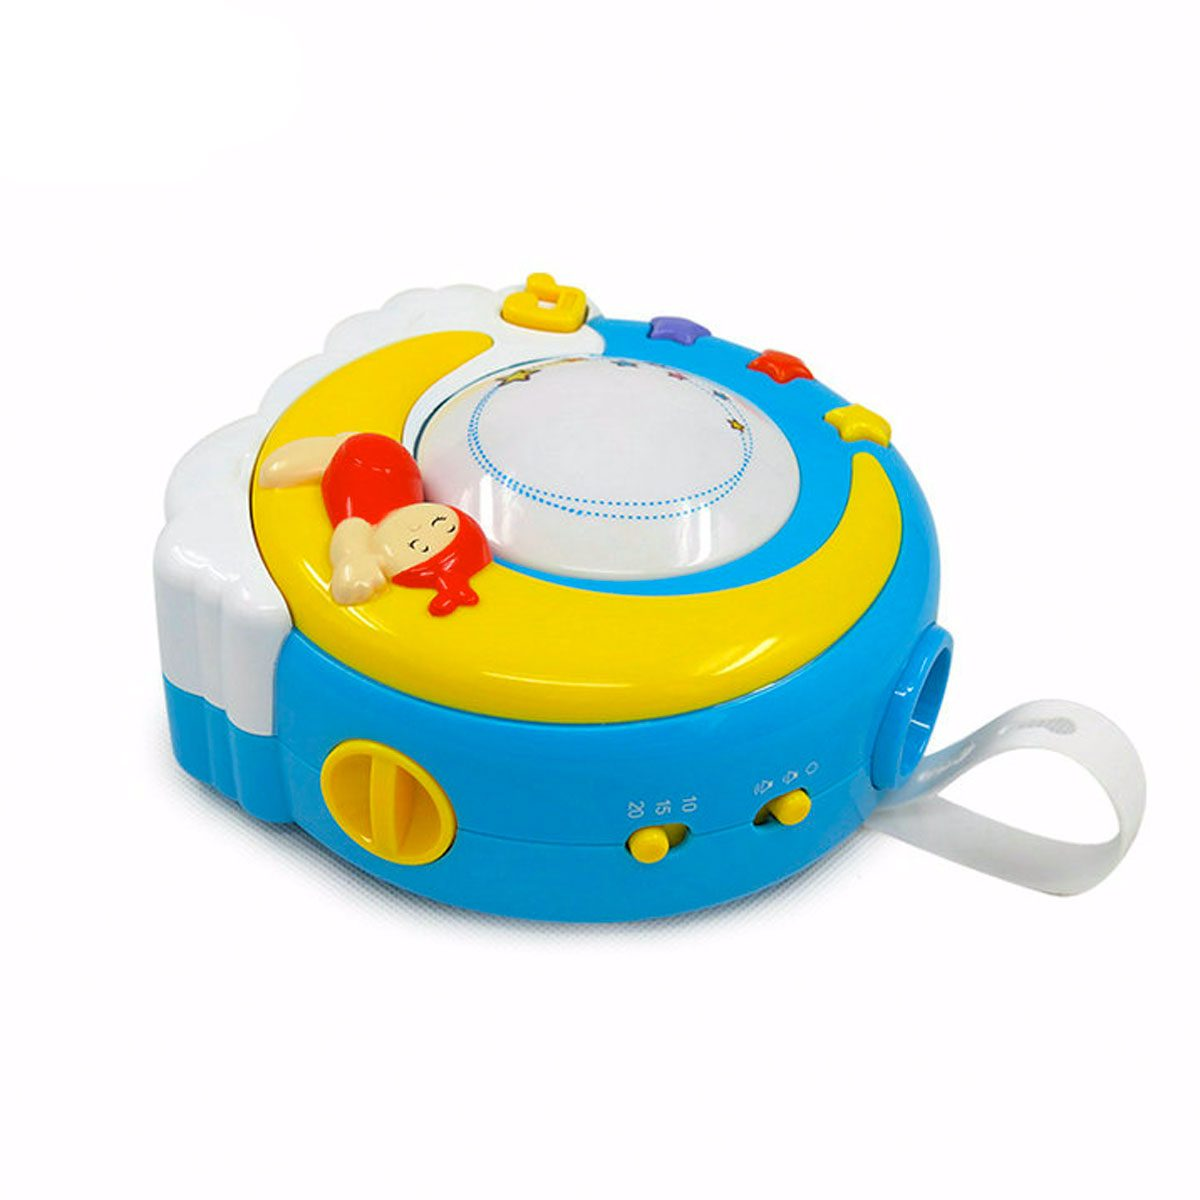 Our Musical Nightlight helps comfort your baby as they sleep